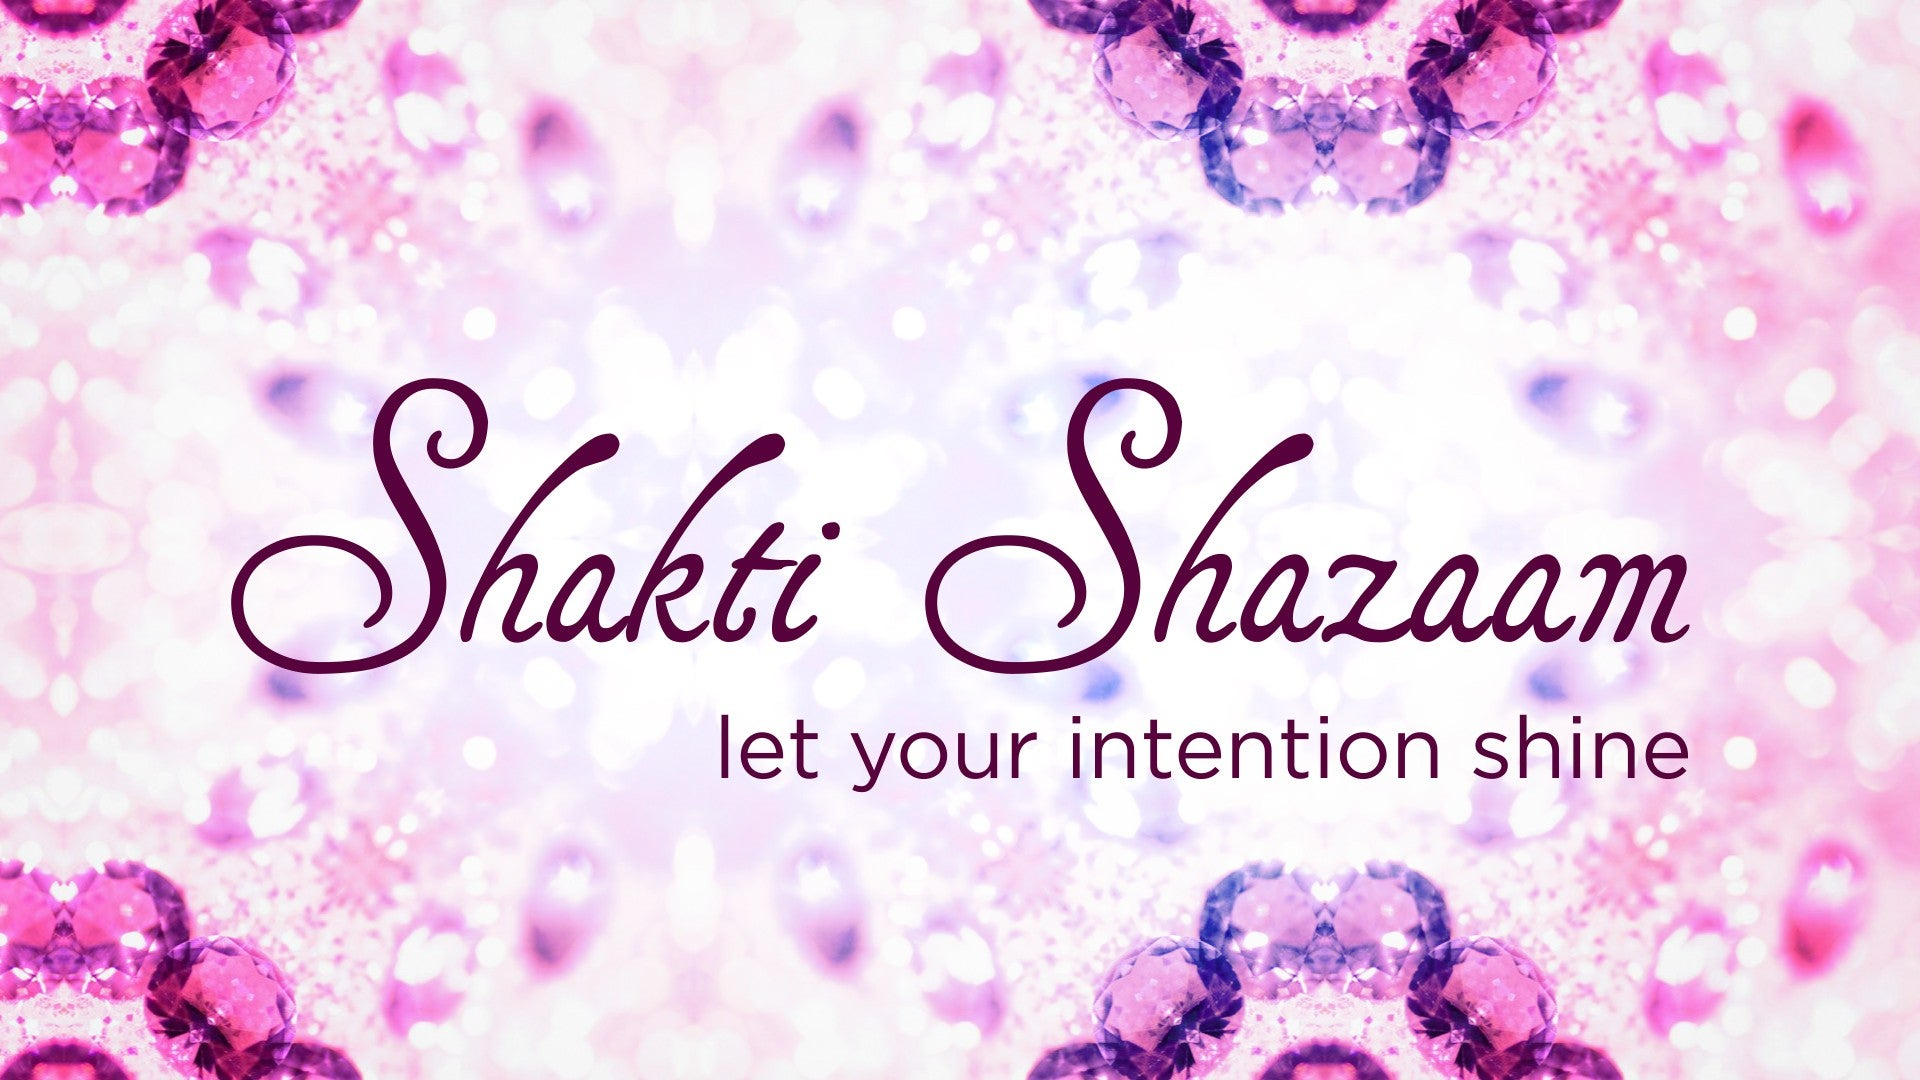 Shakti Shazaam Artwork